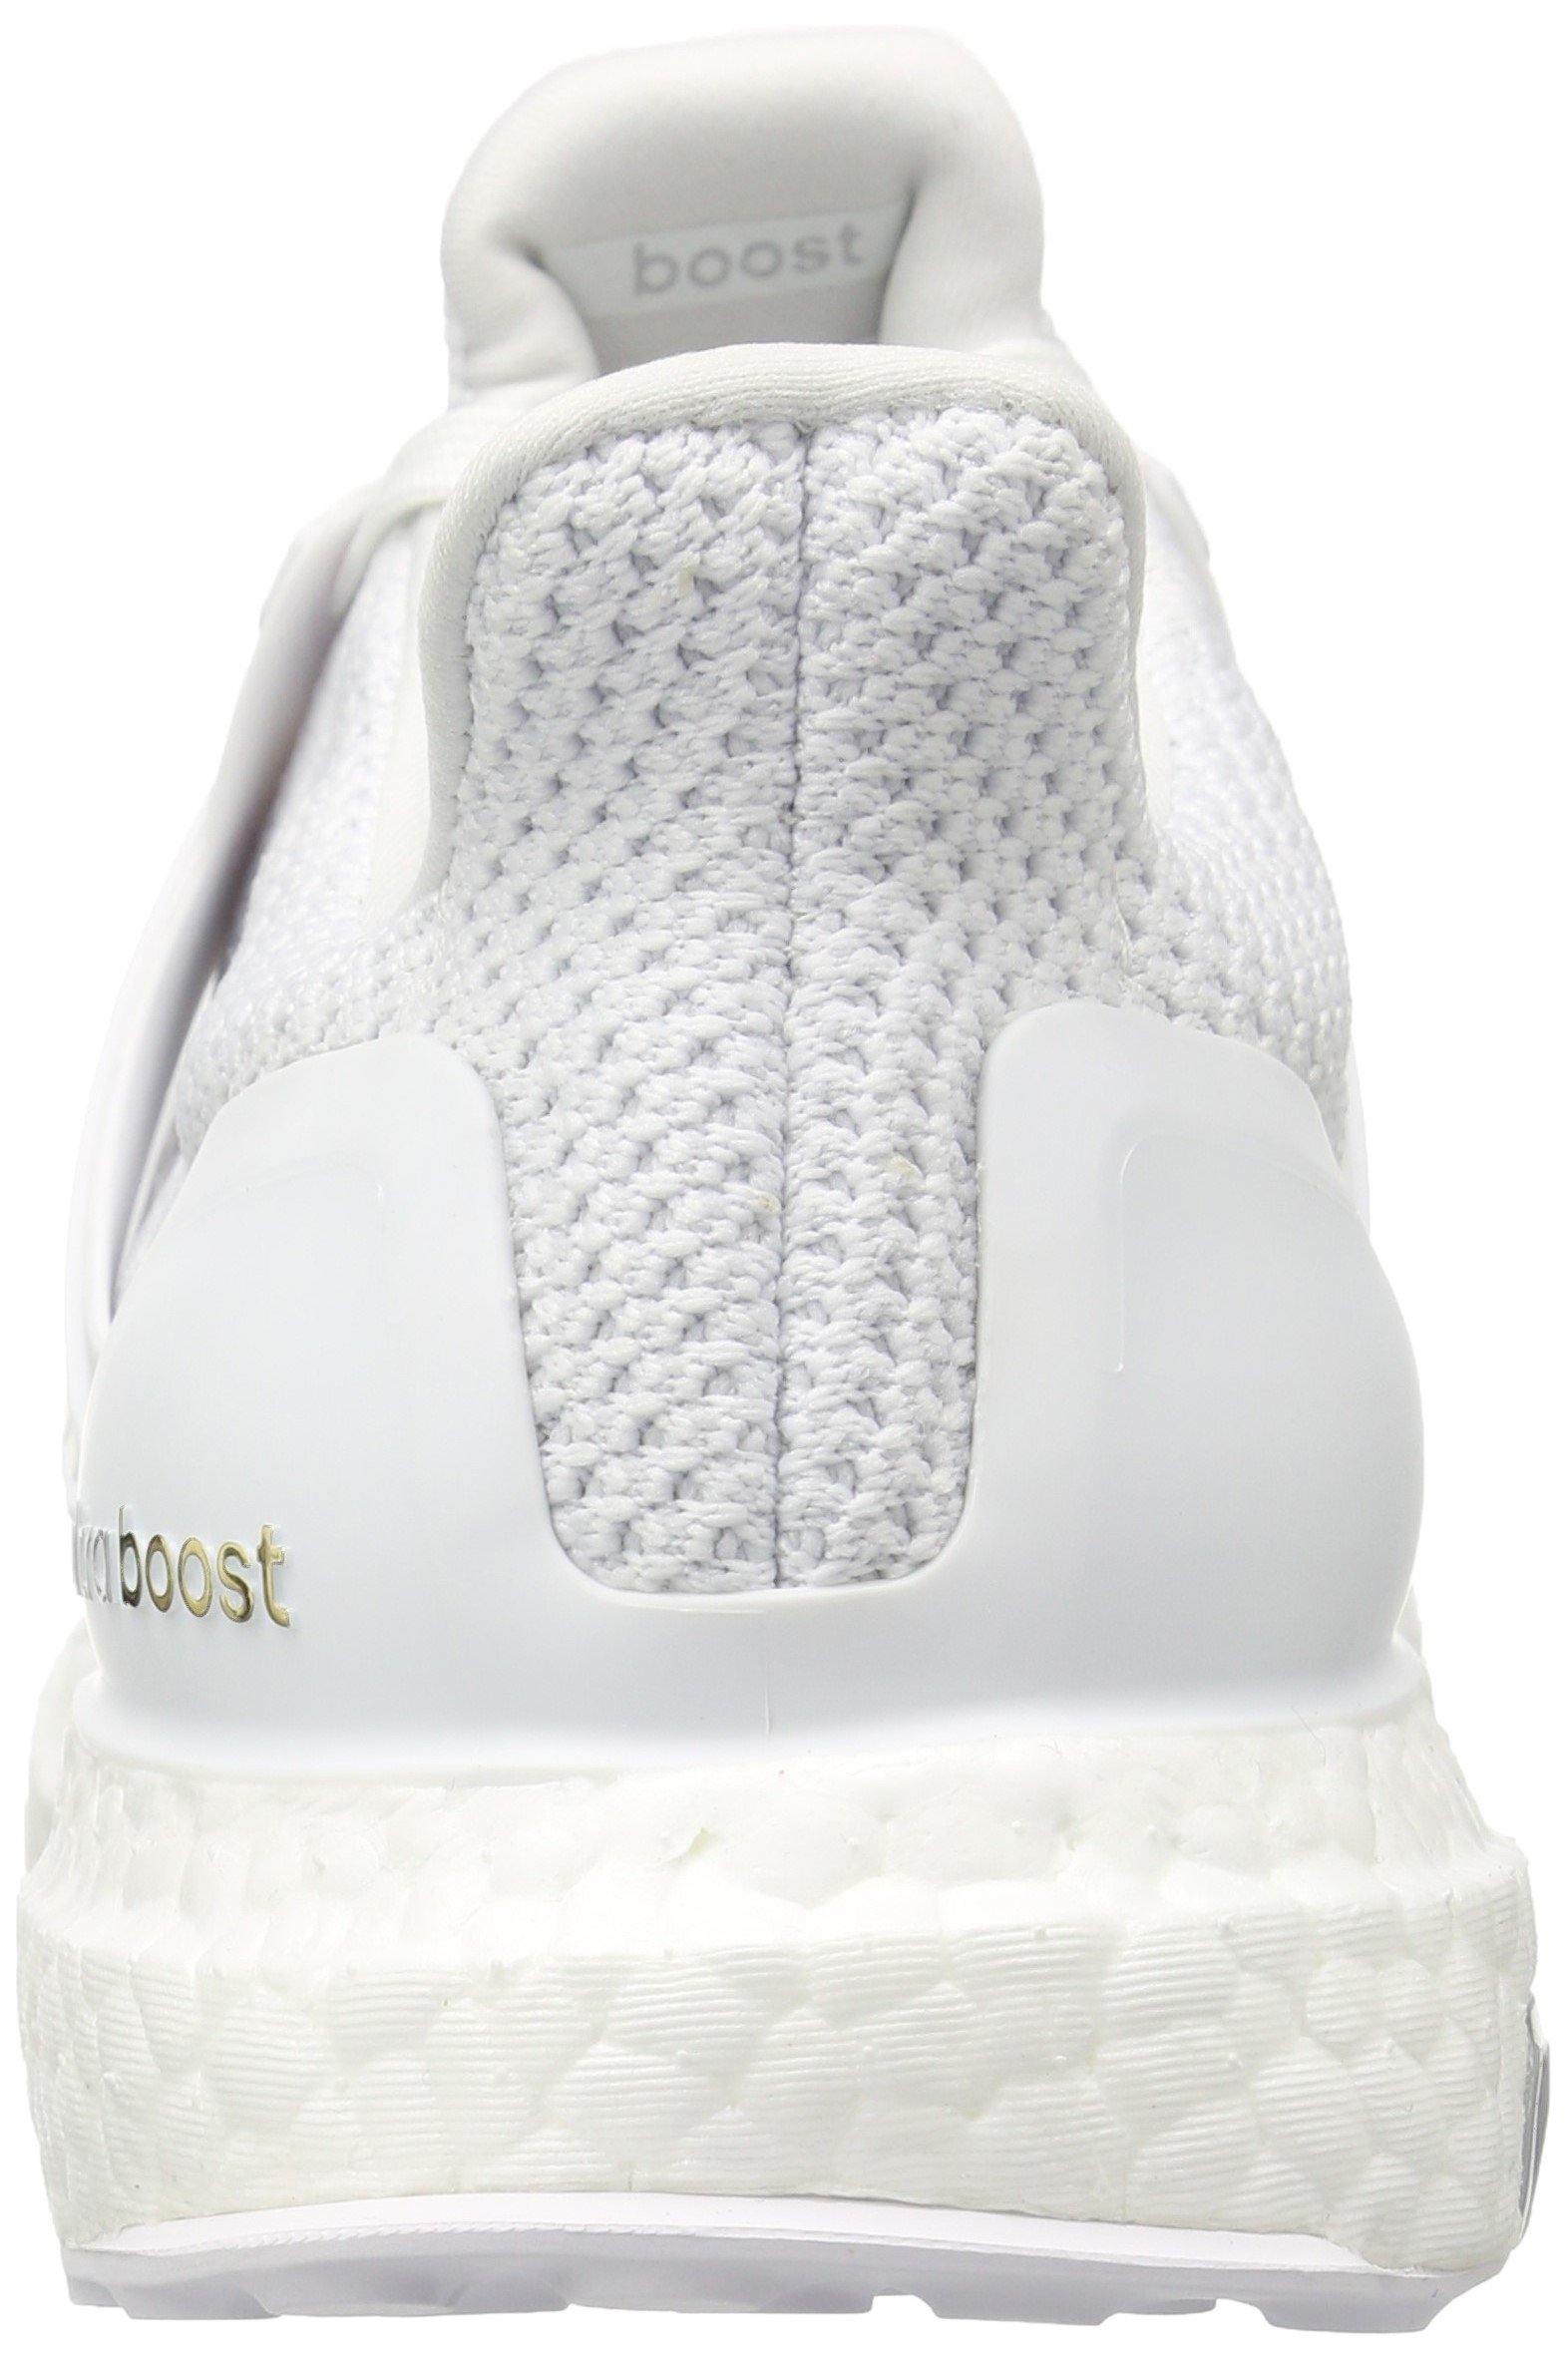 81bJWQxIuOL - adidas Ultra Boost M, Men's Competition Running Shoes Multicolour Size: 8 UK M Crystal White